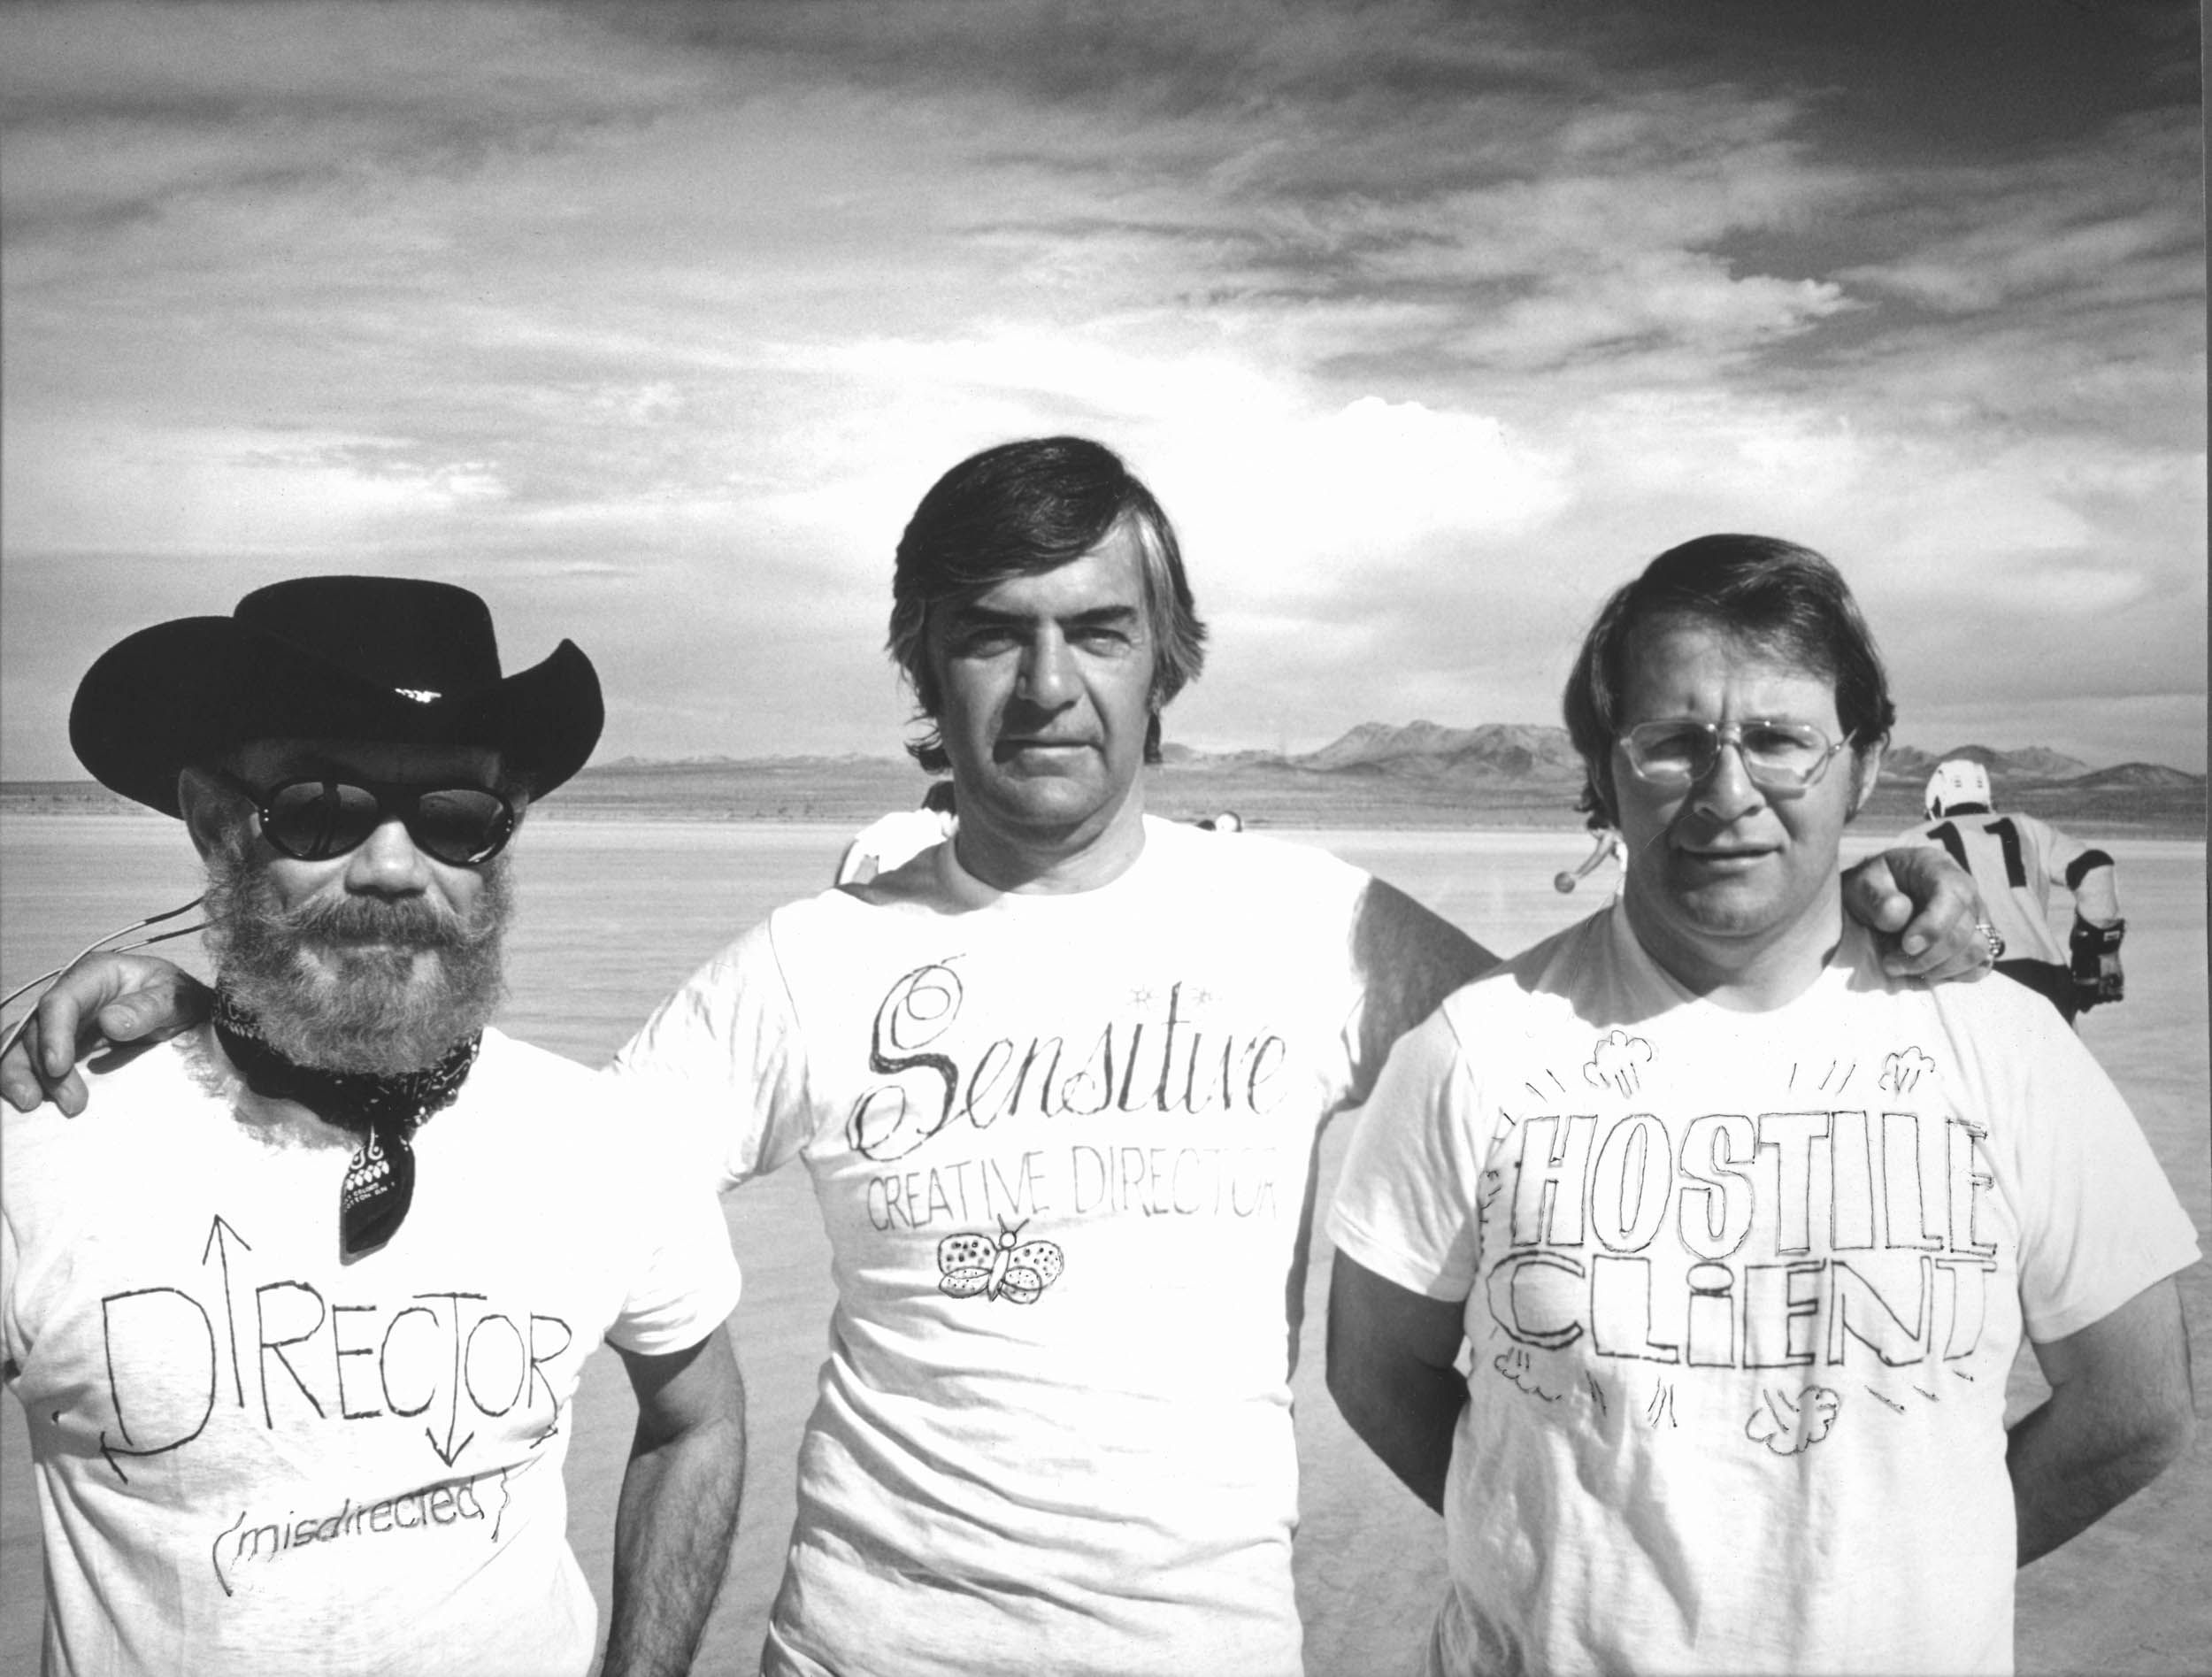 From left, project director Jim Jordan, Marce Mayhew from MG's ad agency, and British Leyland ad director Bob Burden are identified by their T-shirts.